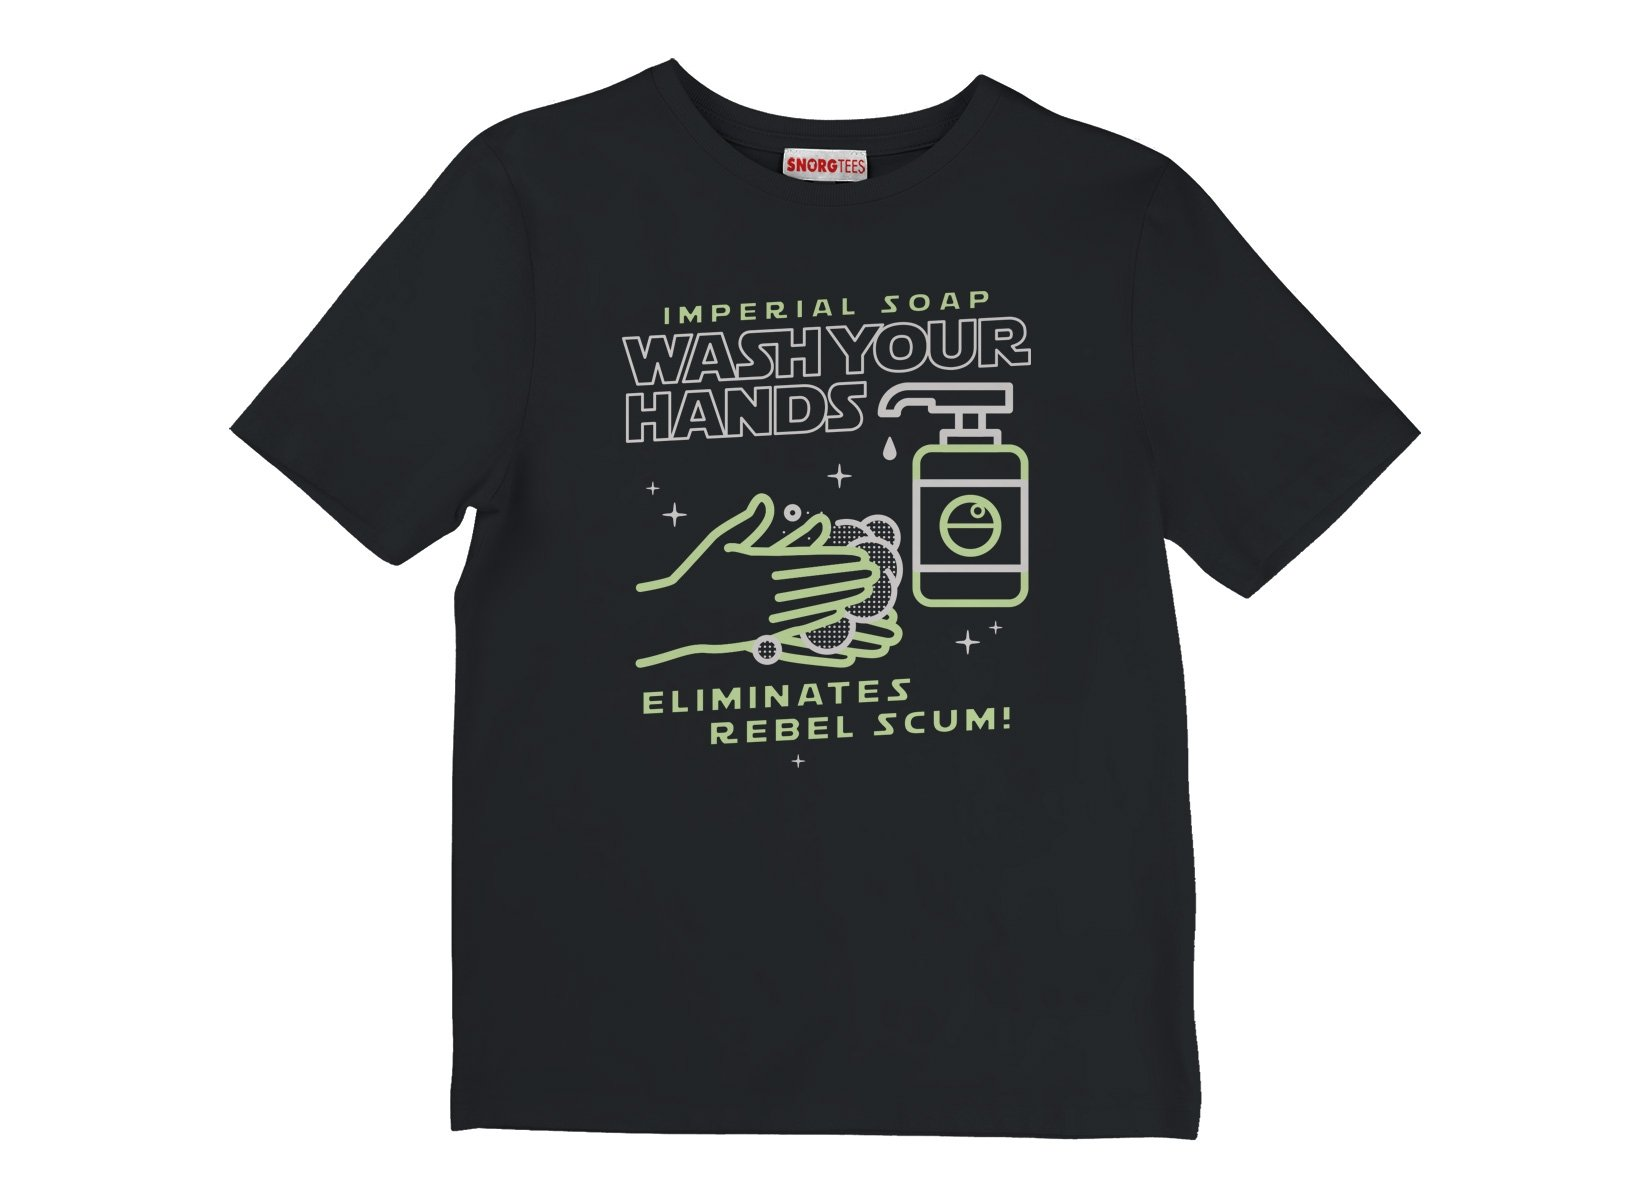 Imperial Soap on Kids T-Shirt